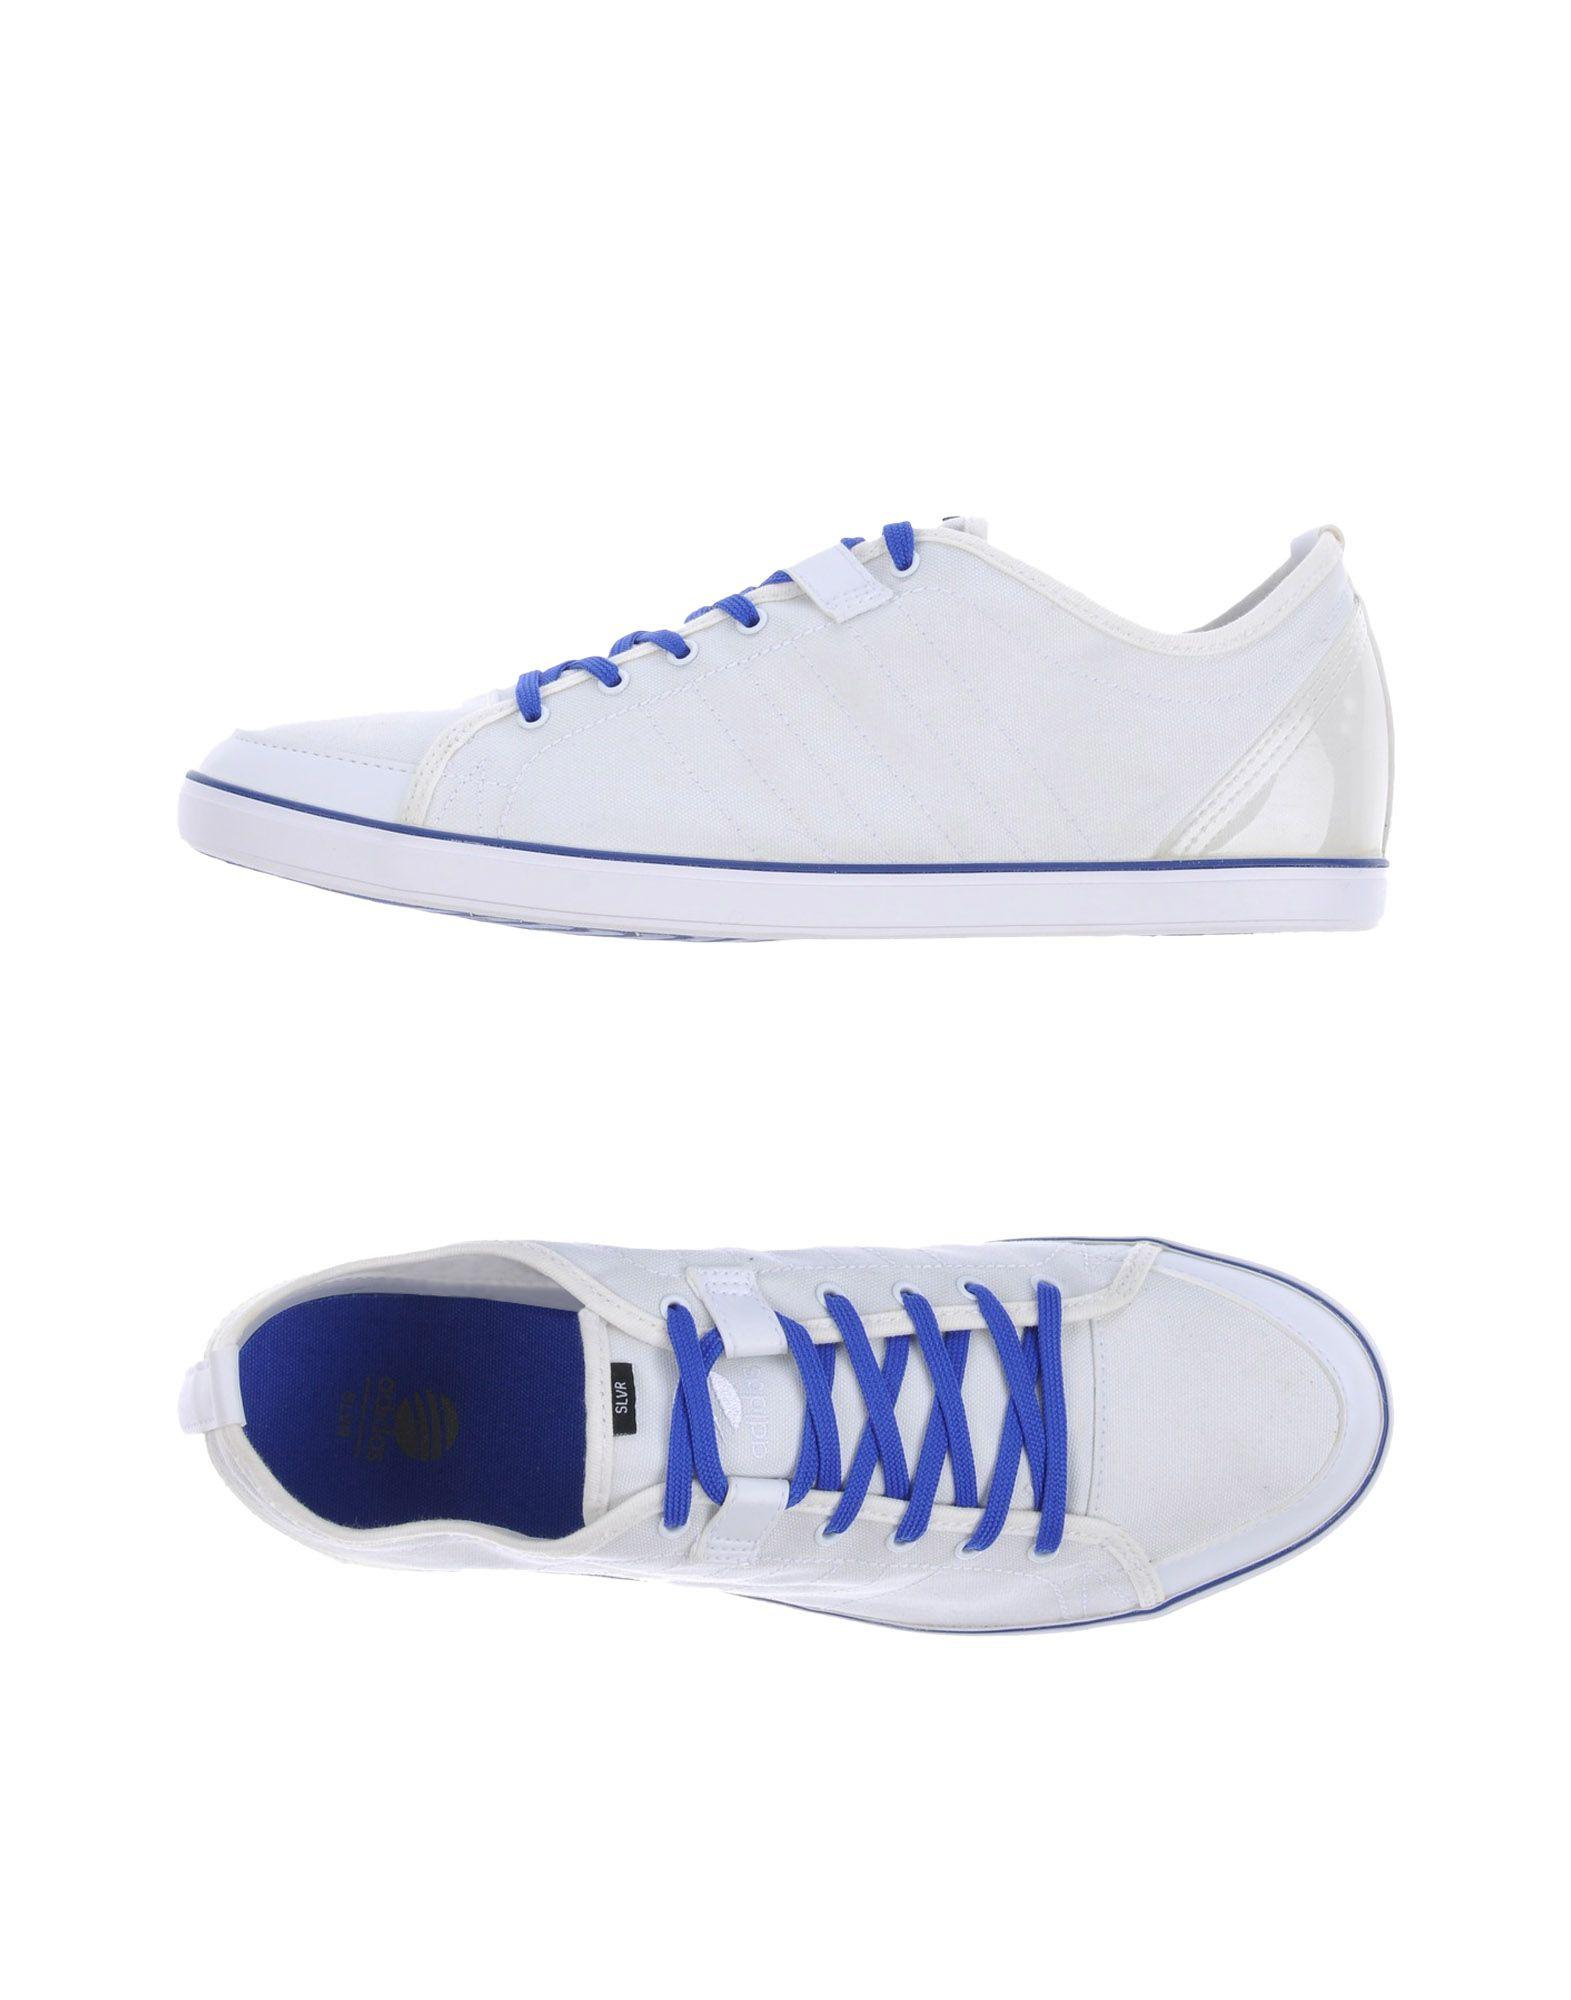 adidas slvr low tops sneakers in white for lyst